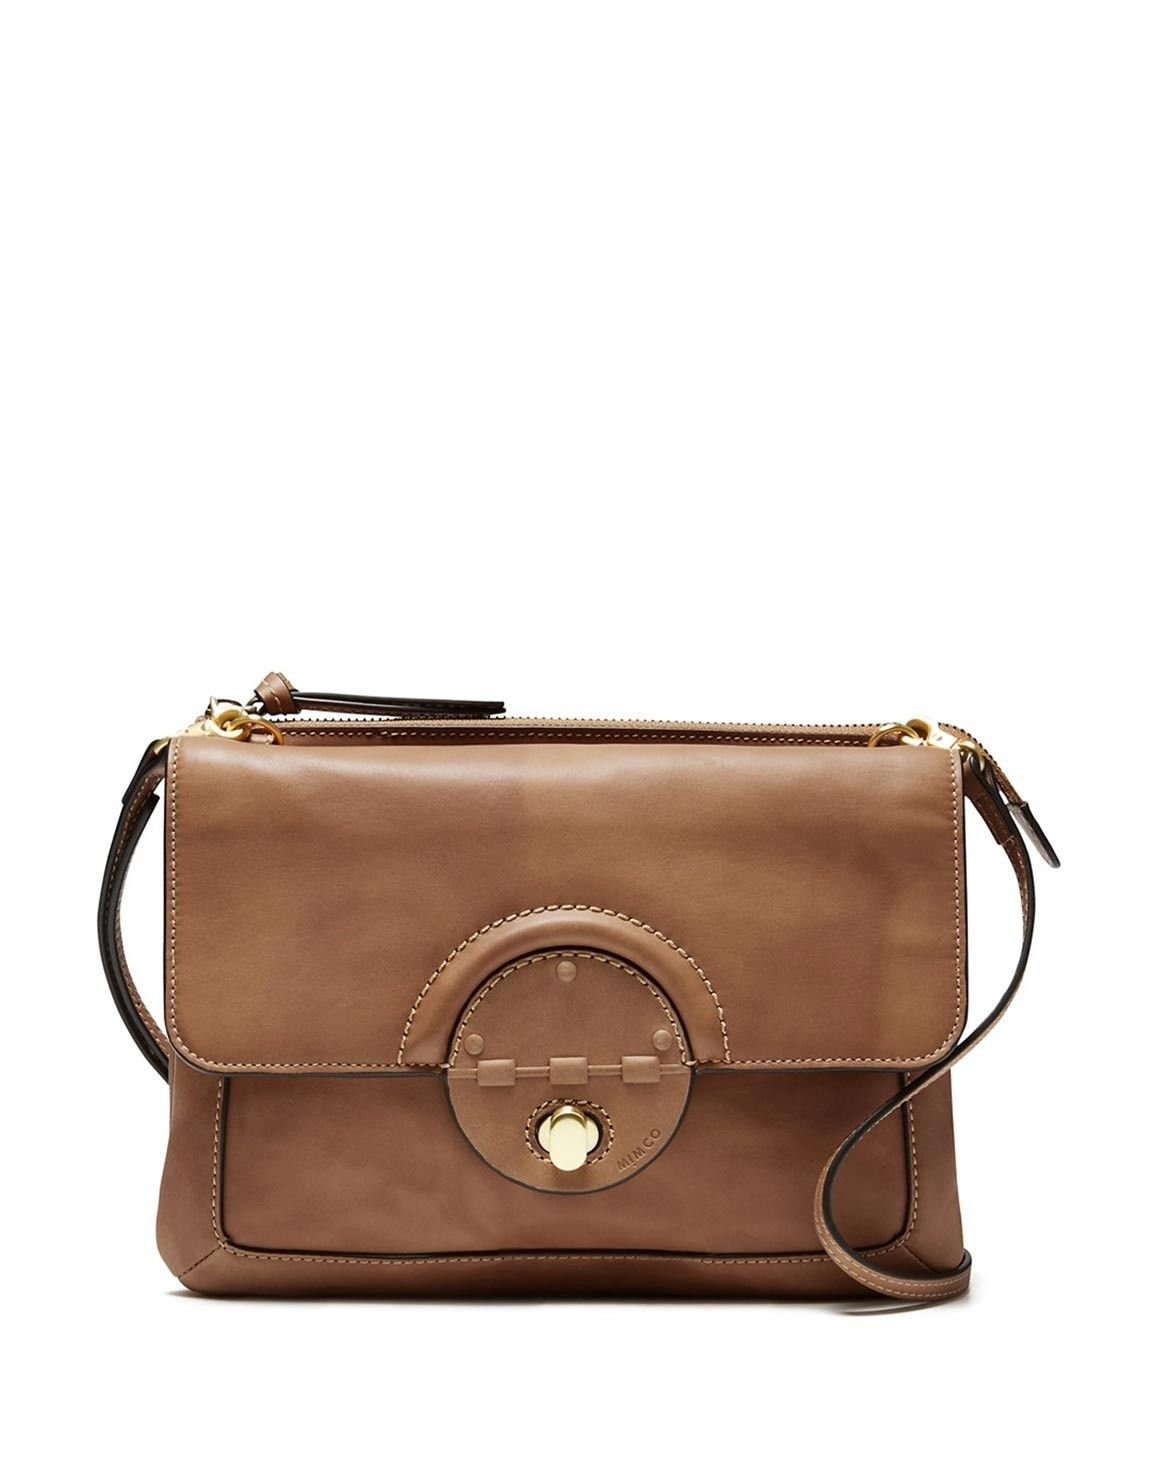 Plateau Hip Bag - mimco SA   Shopaholic   Pinterest   Bags, Hip bag ... f223074c4d